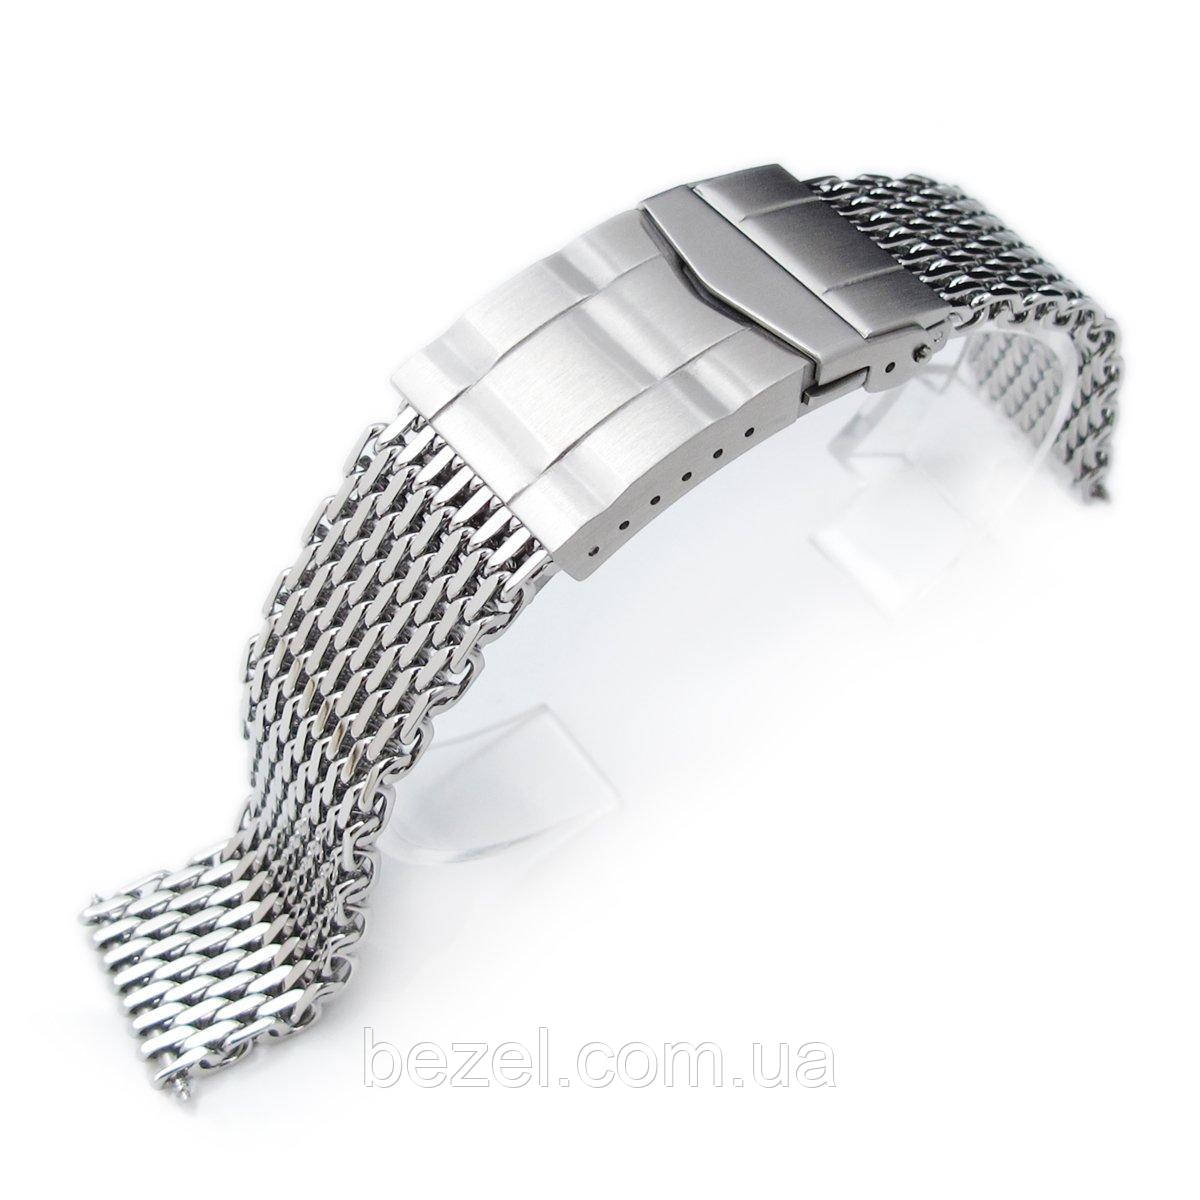 19mm, 20mm Ploprof 316 Reform Stainless Steel SHARK Mesh Watch Band, Submariner Diver Clasp, Polished